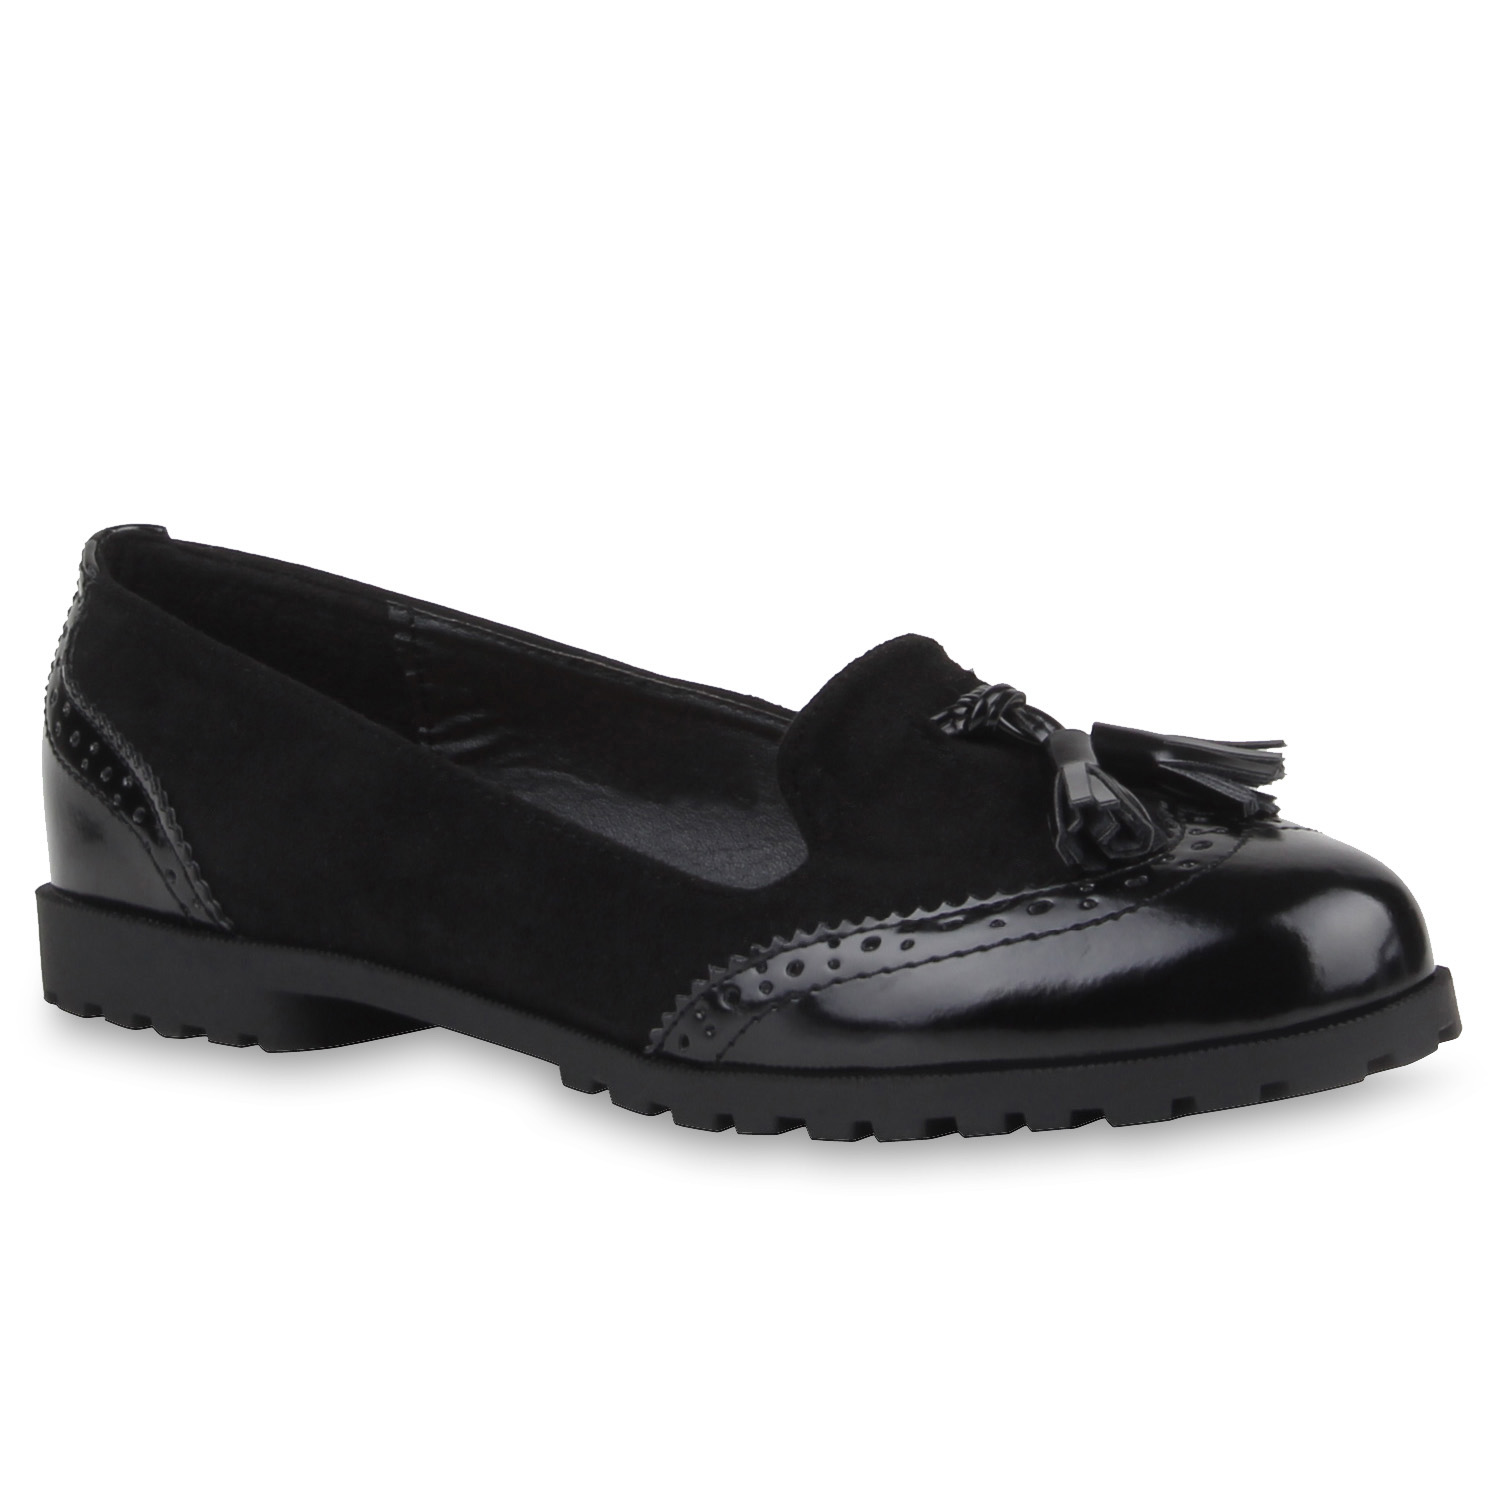 damen slipper loafers tasselloafer quasten lack flats 77011 ebay. Black Bedroom Furniture Sets. Home Design Ideas